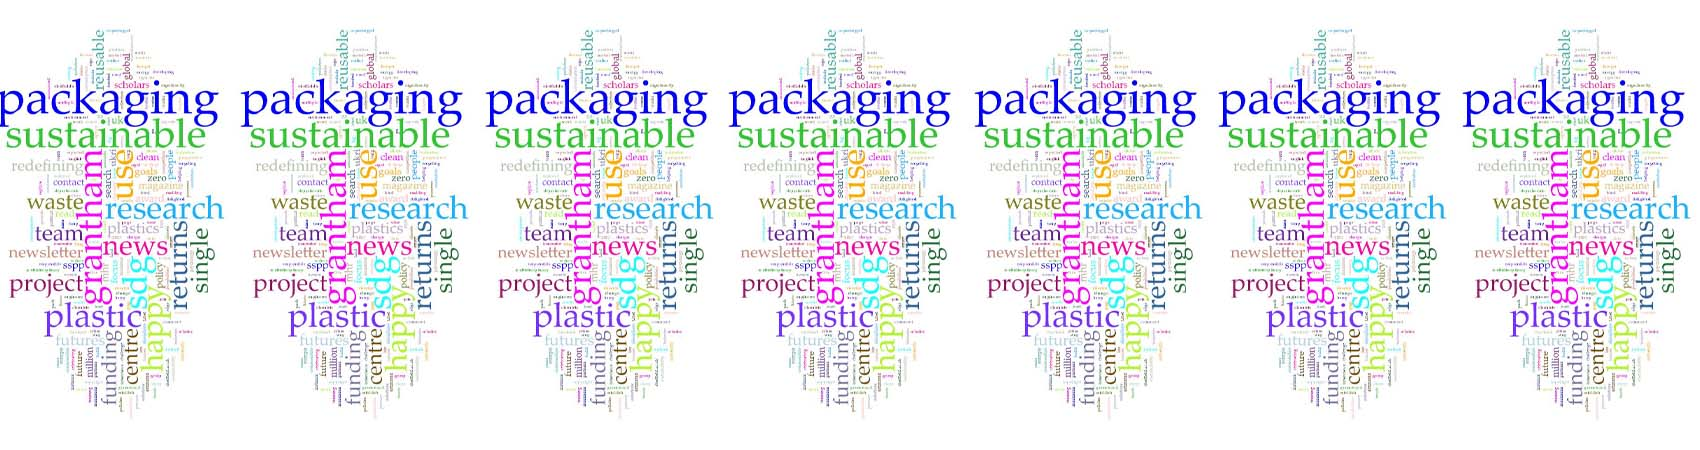 Many Happy Returns - enabling reusable plastic packaging systems banner image